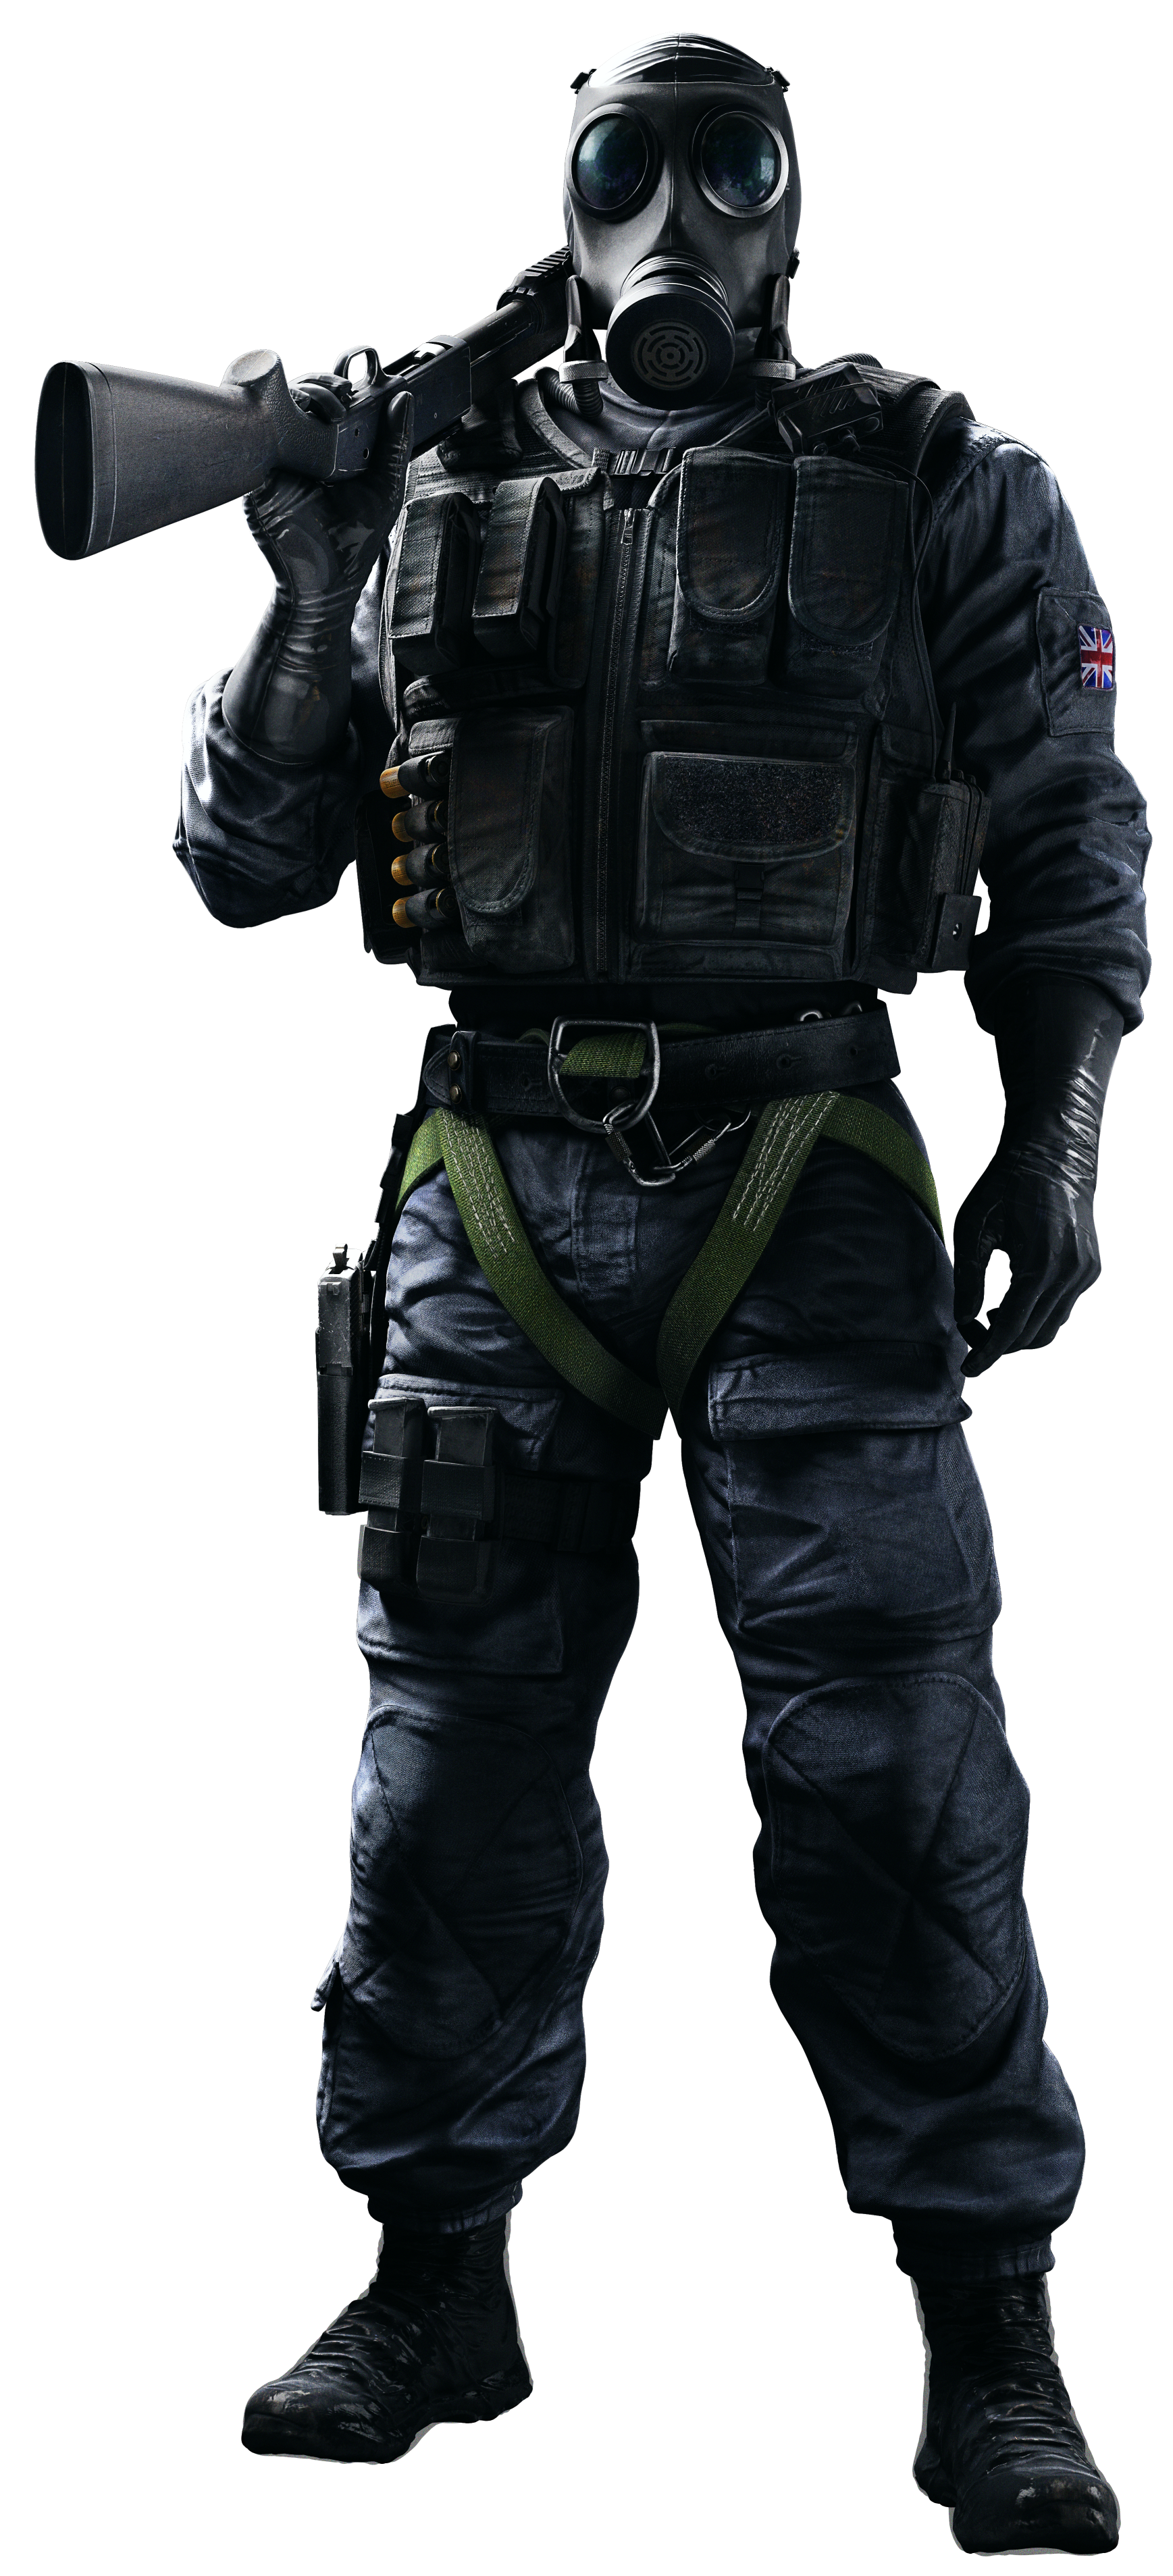 Rainbow six siege png. Image smoke full body